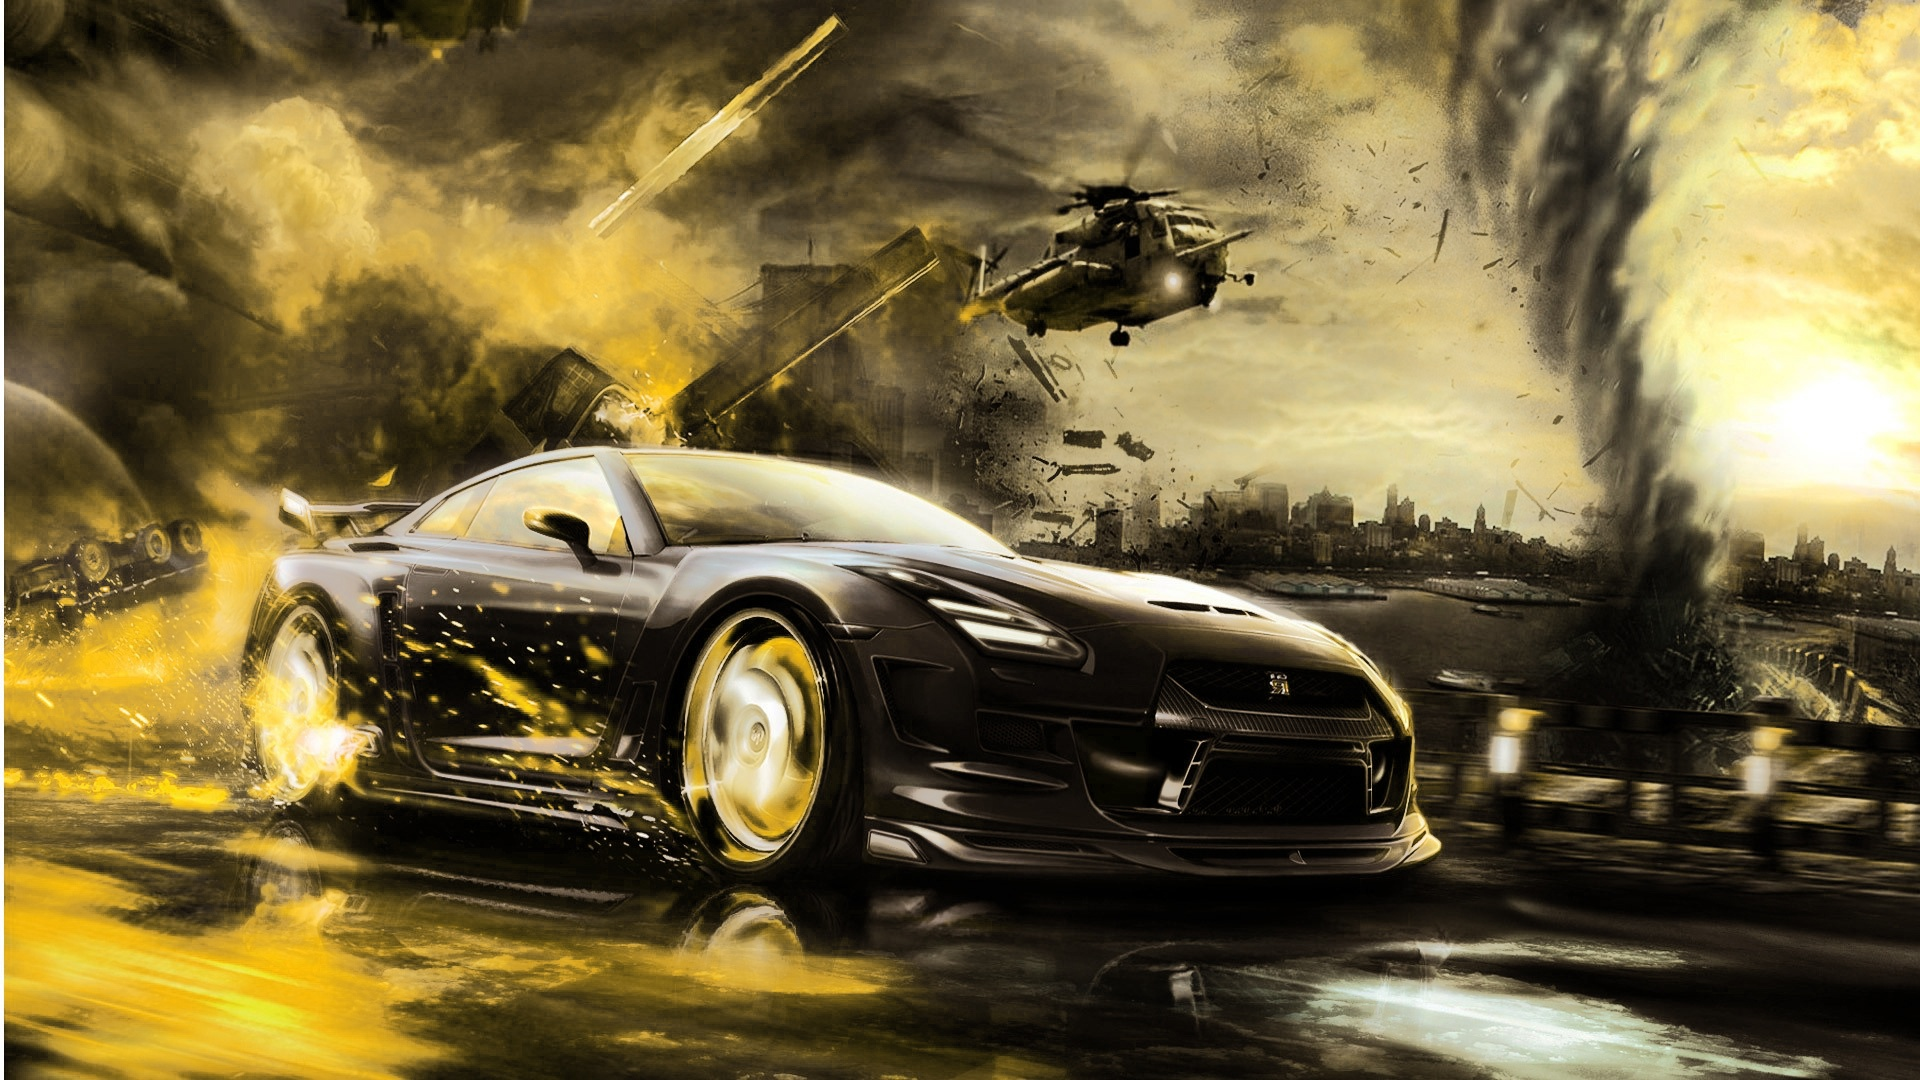 Cool Backgrounds Hd 1080p